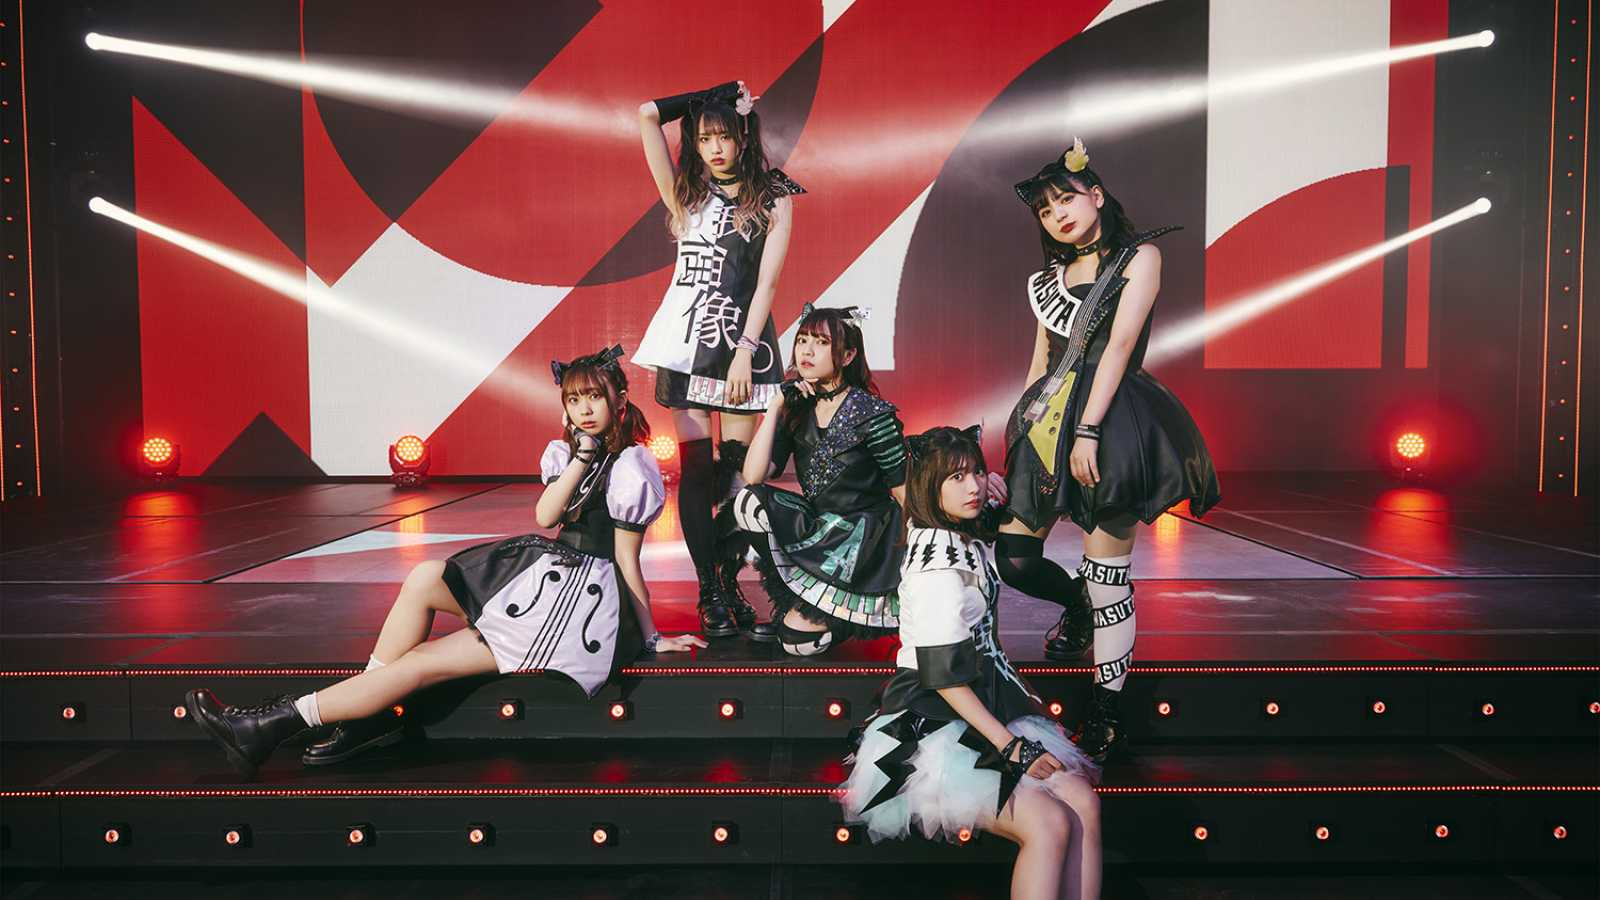 Wasuta Reveals Music Video for Lead Track from Upcoming Mini-Album © Wasuta. All rights reserved.